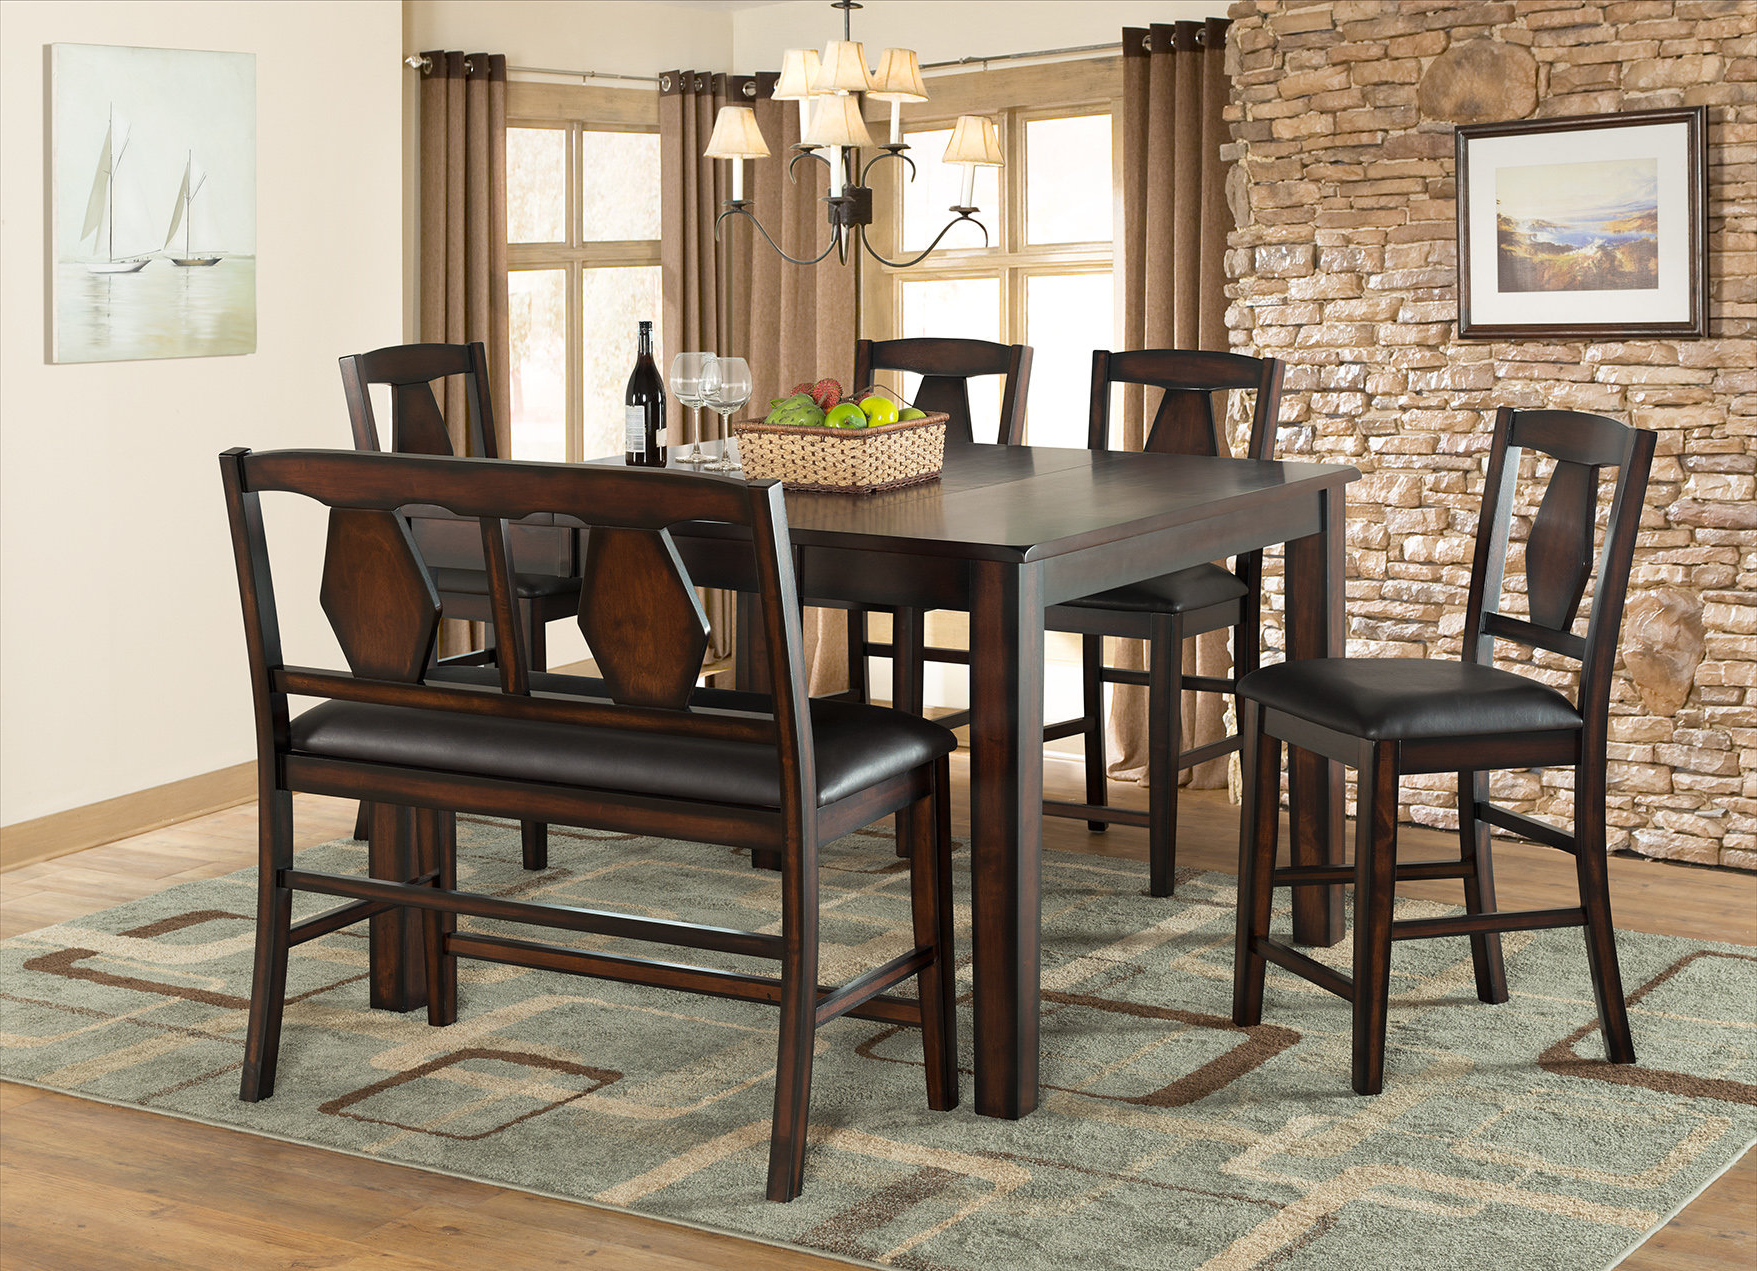 Most Recent Biggs 5 Piece Counter Height Solid Wood Dining Sets (Set Of 5) In Vilohomeinc (View 6 of 25)